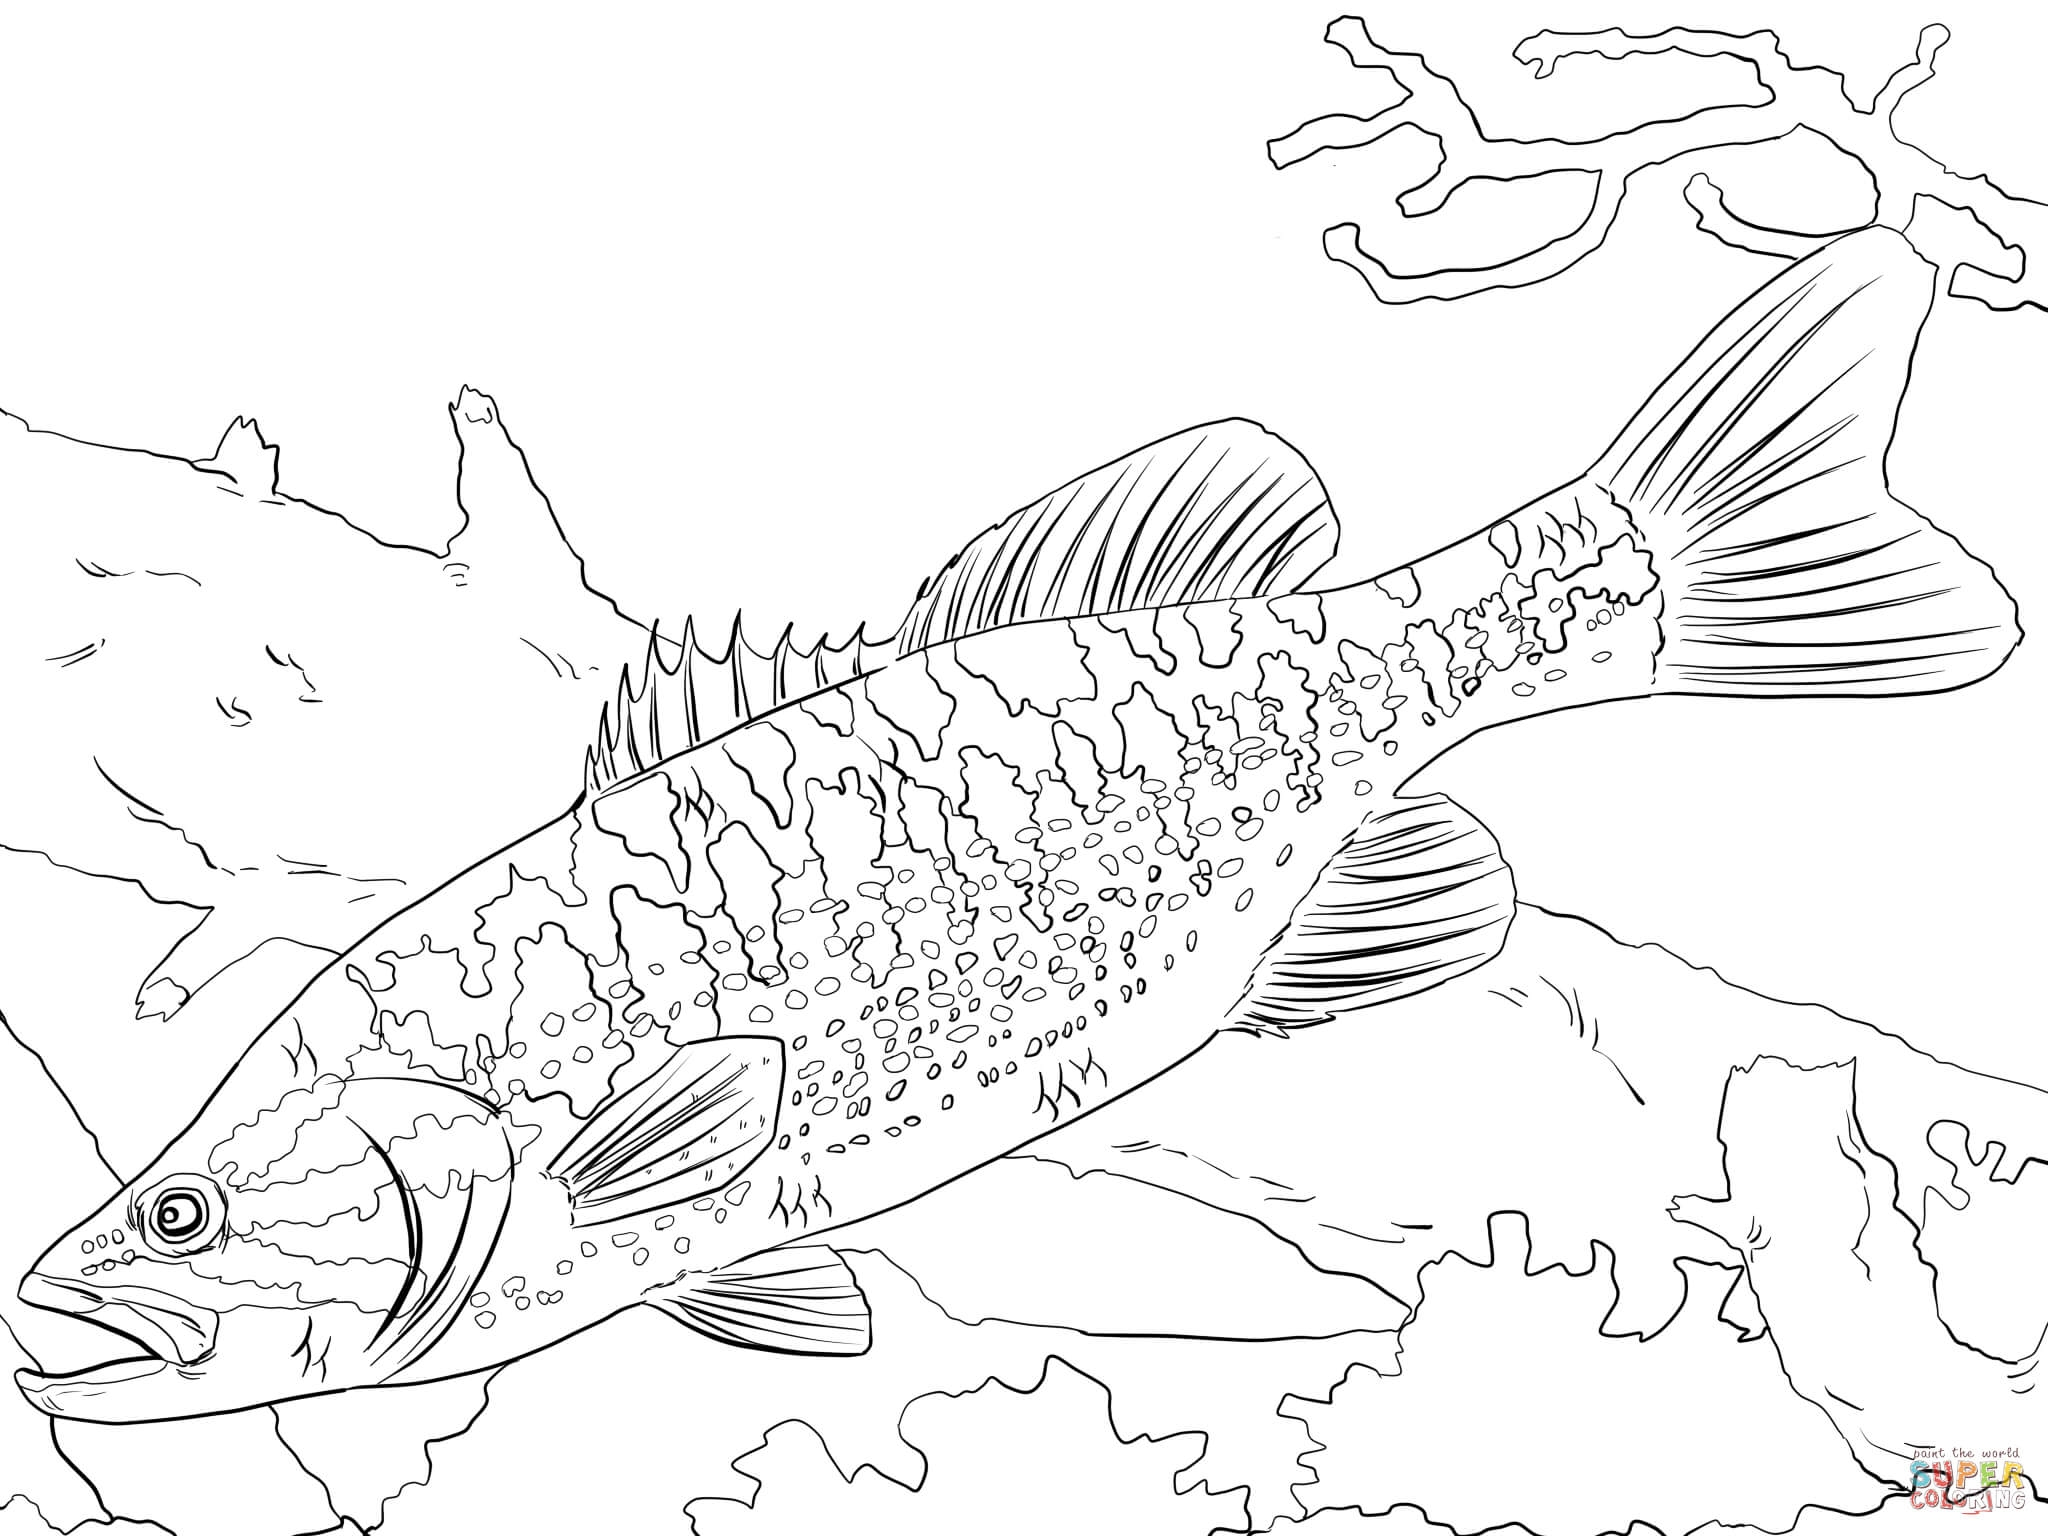 koi fish coloring page - guadalupe bass